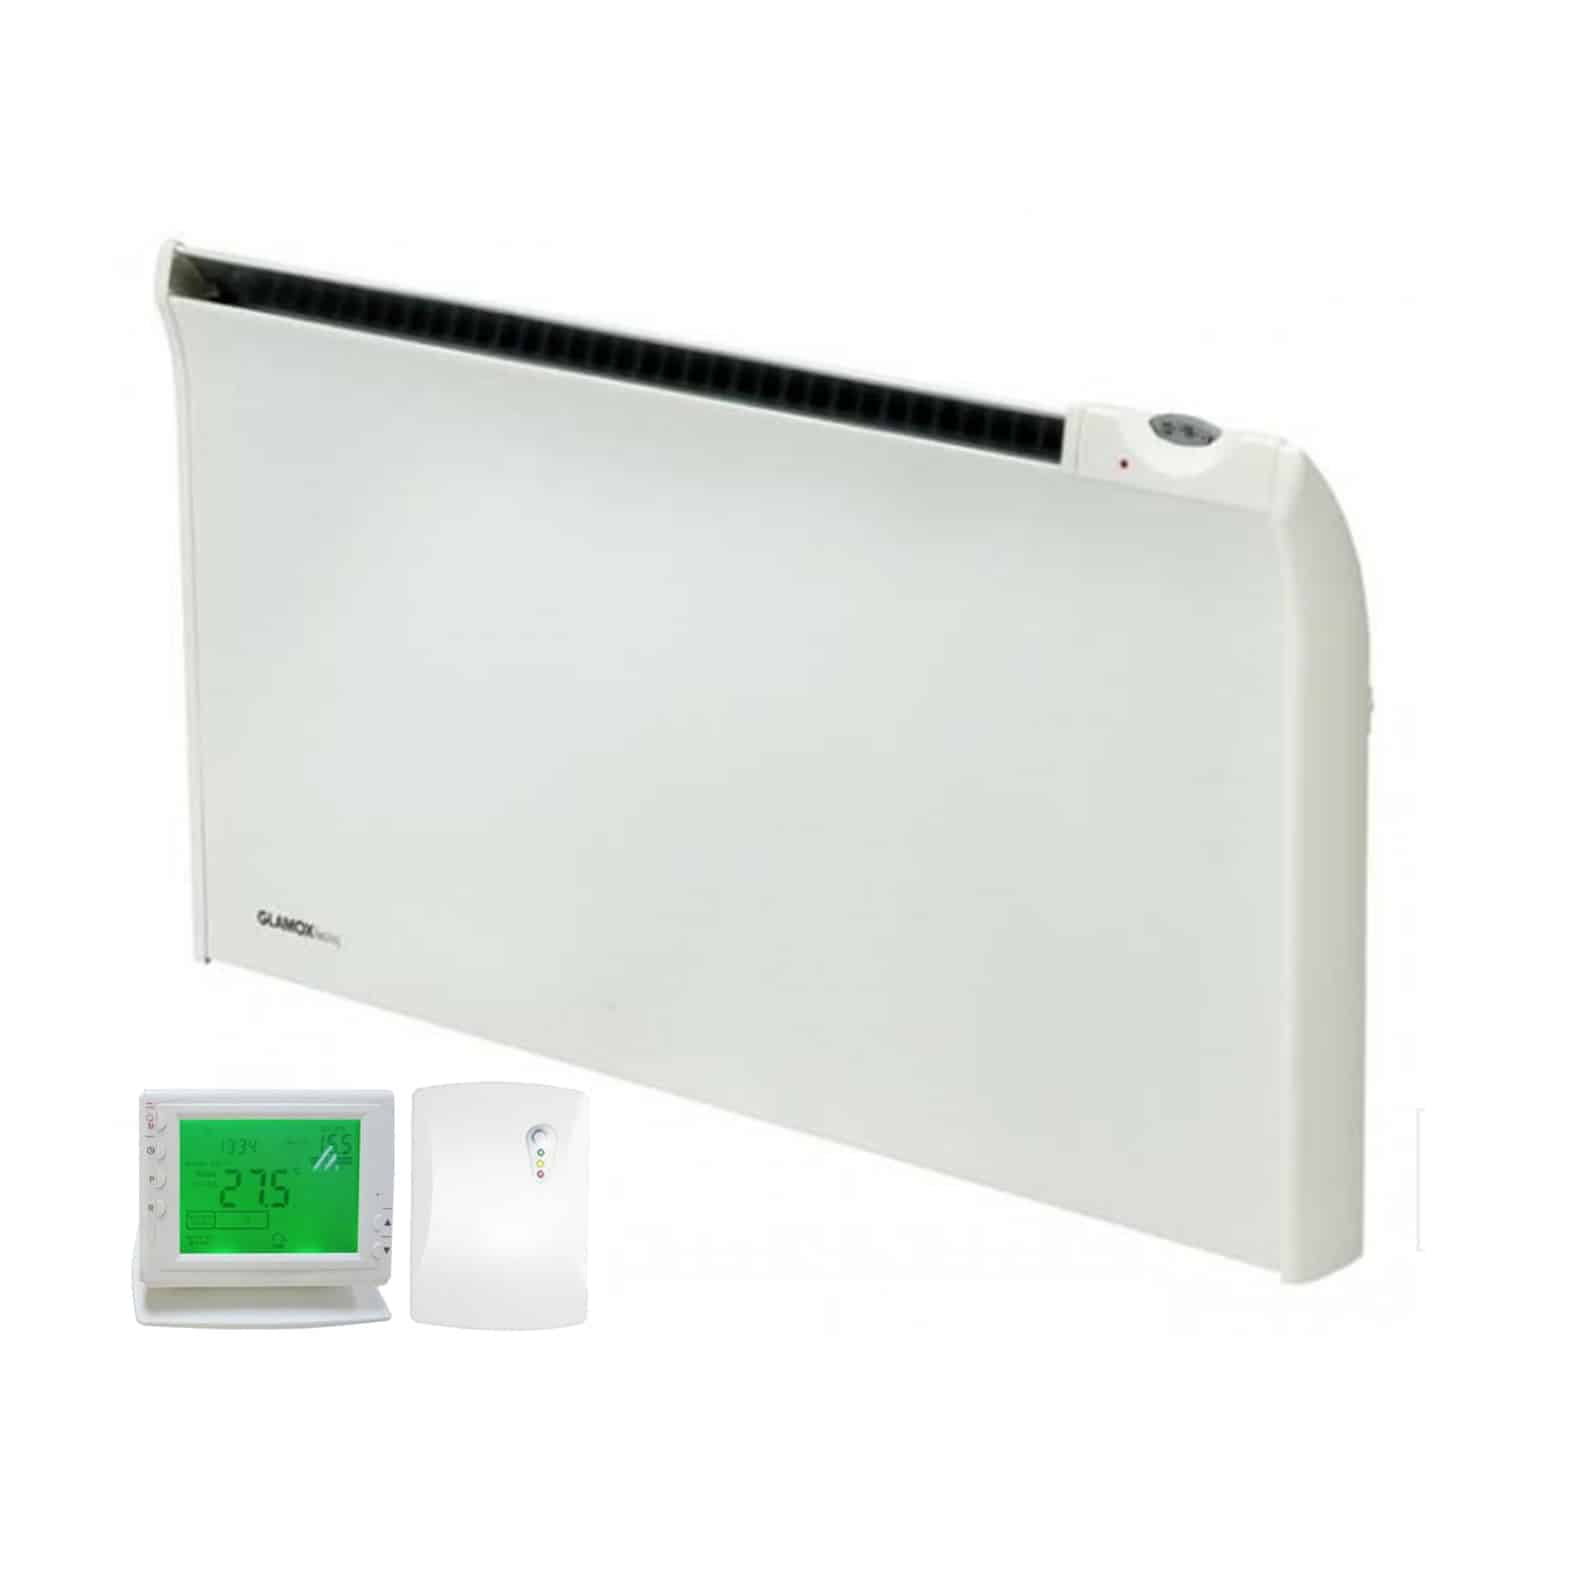 Safe Bathroom Heaters Adax Norel Tpvd Bathroom Safe Electric Panel Heater With Wireless